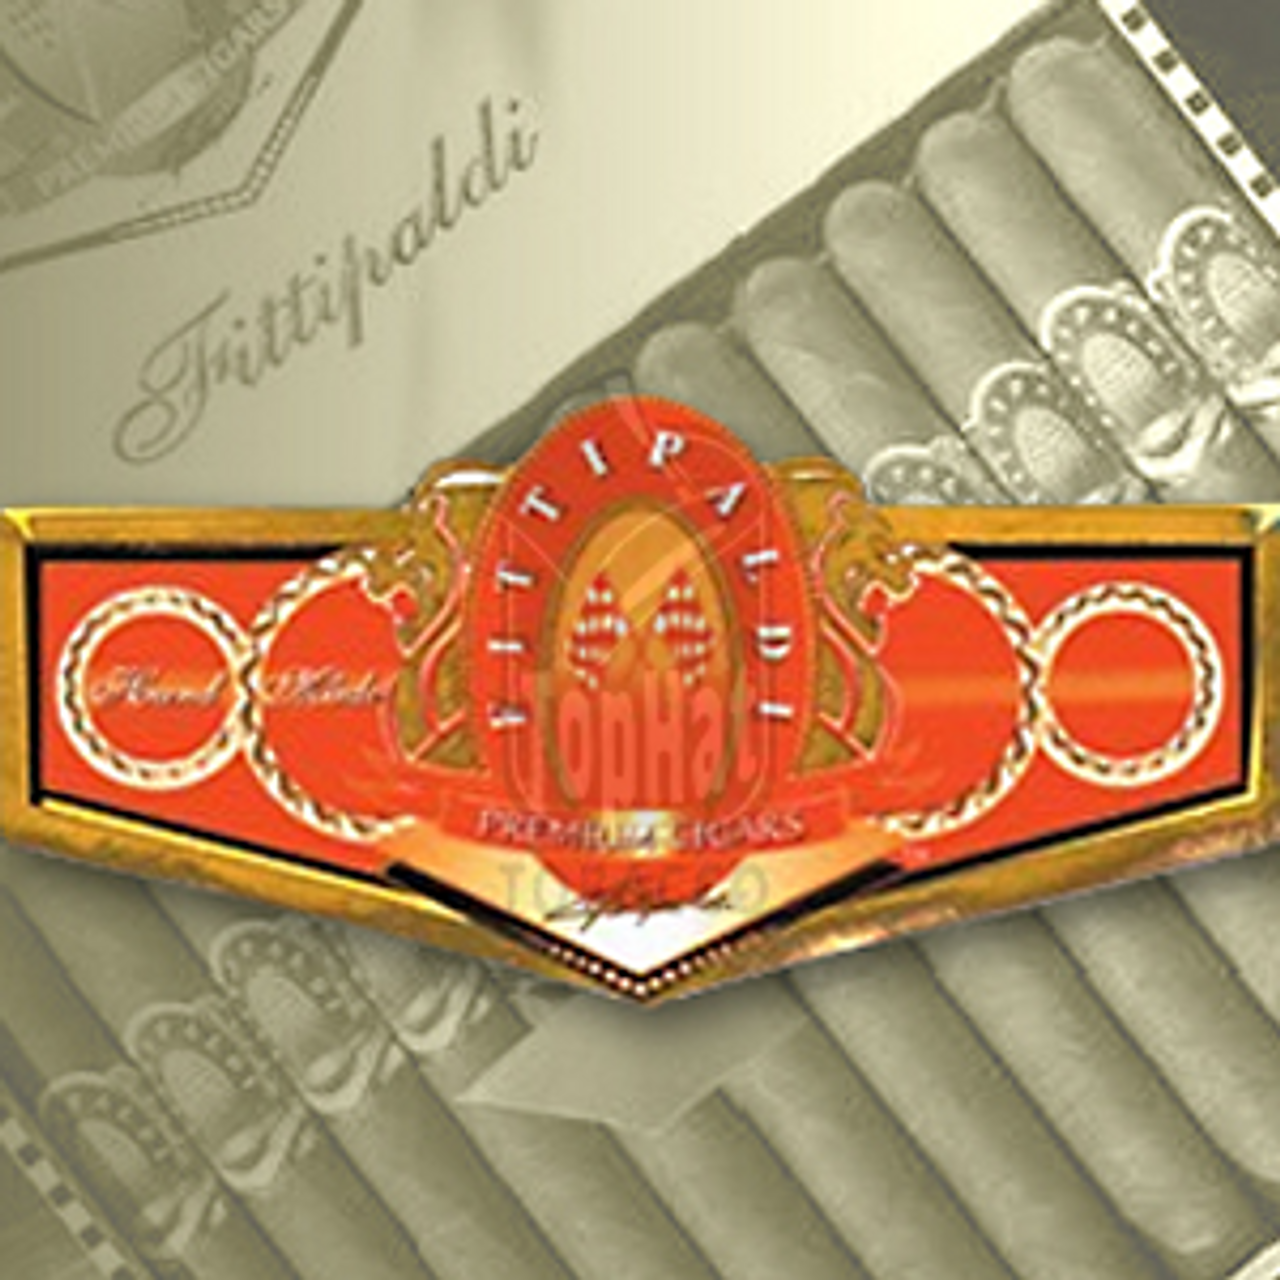 Fittipaldi Silver Churchill Maduro Cigars - 7 x 48 (Box of 25)